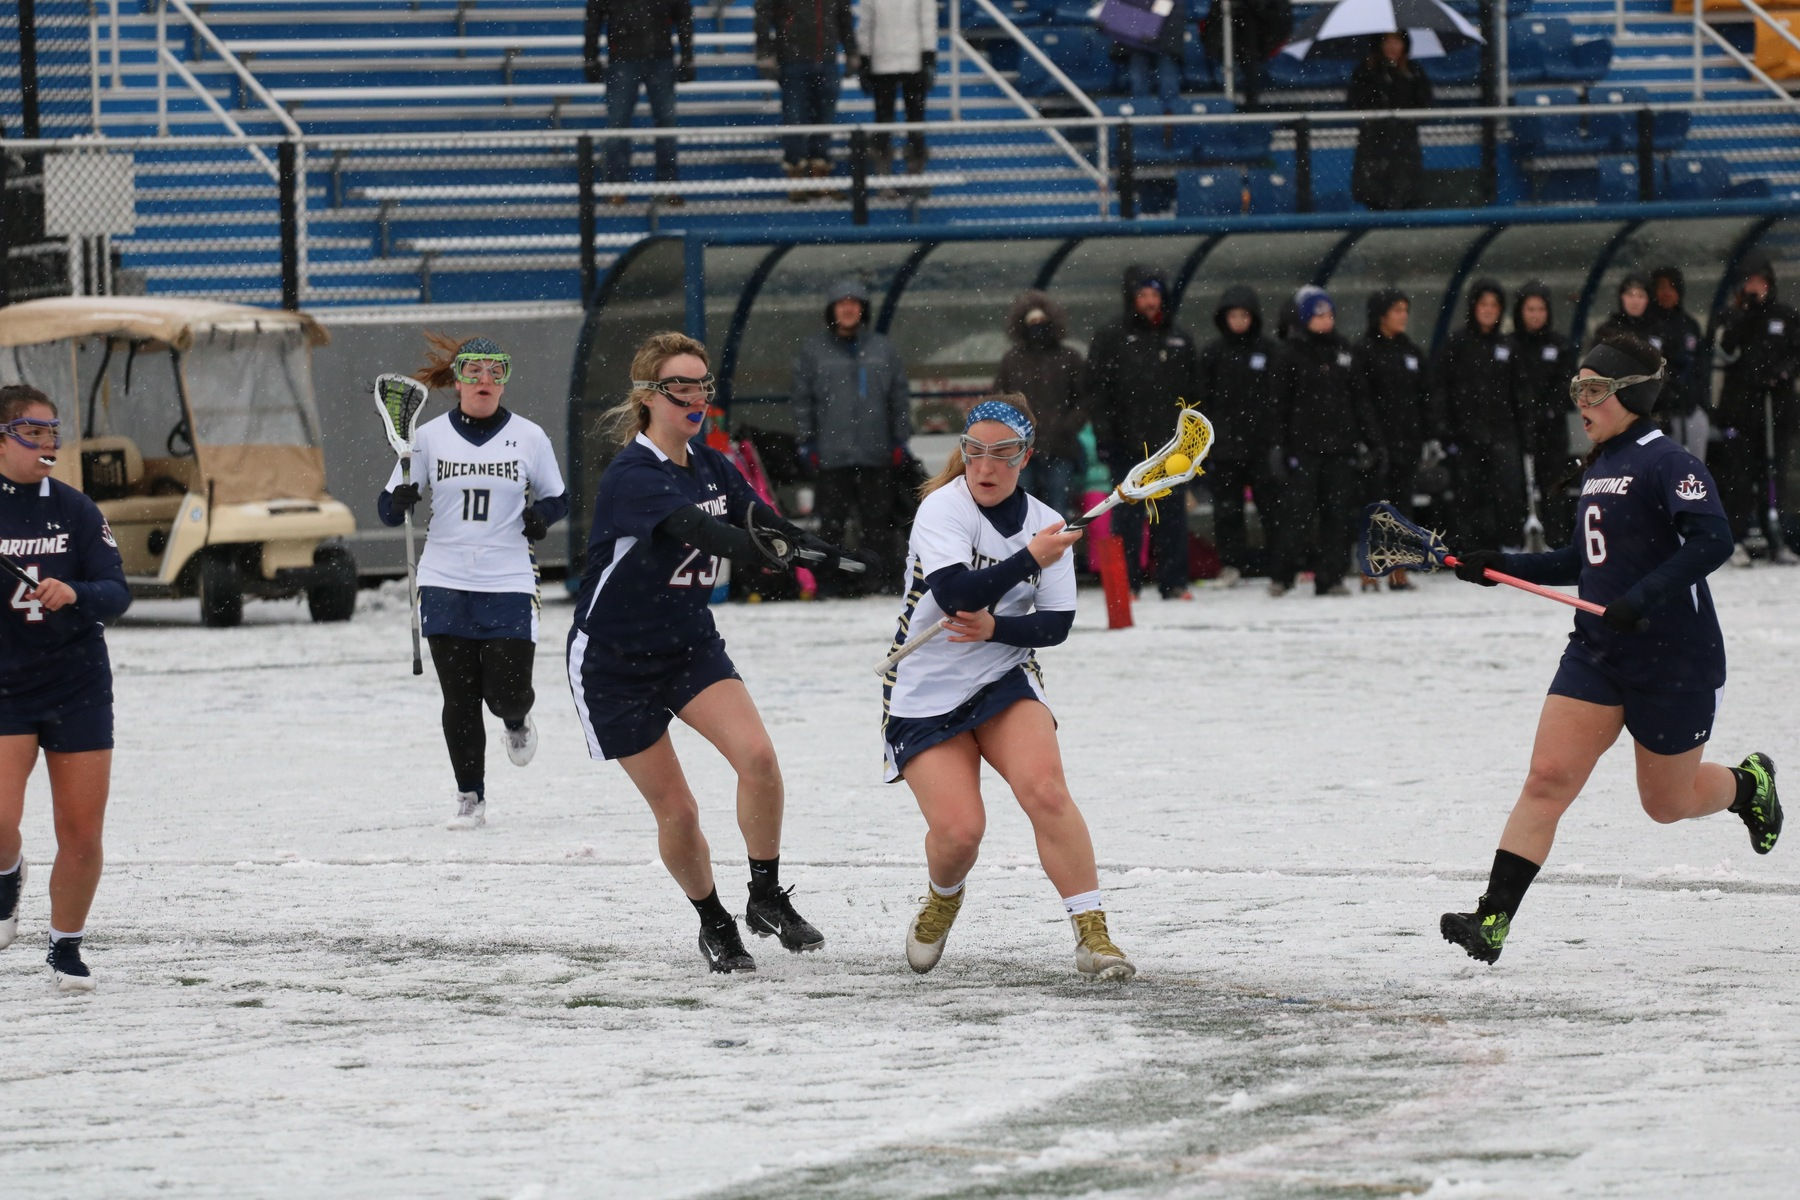 Privateers Win Maritime Classic over Bucs in Snowy Buzzards Bay